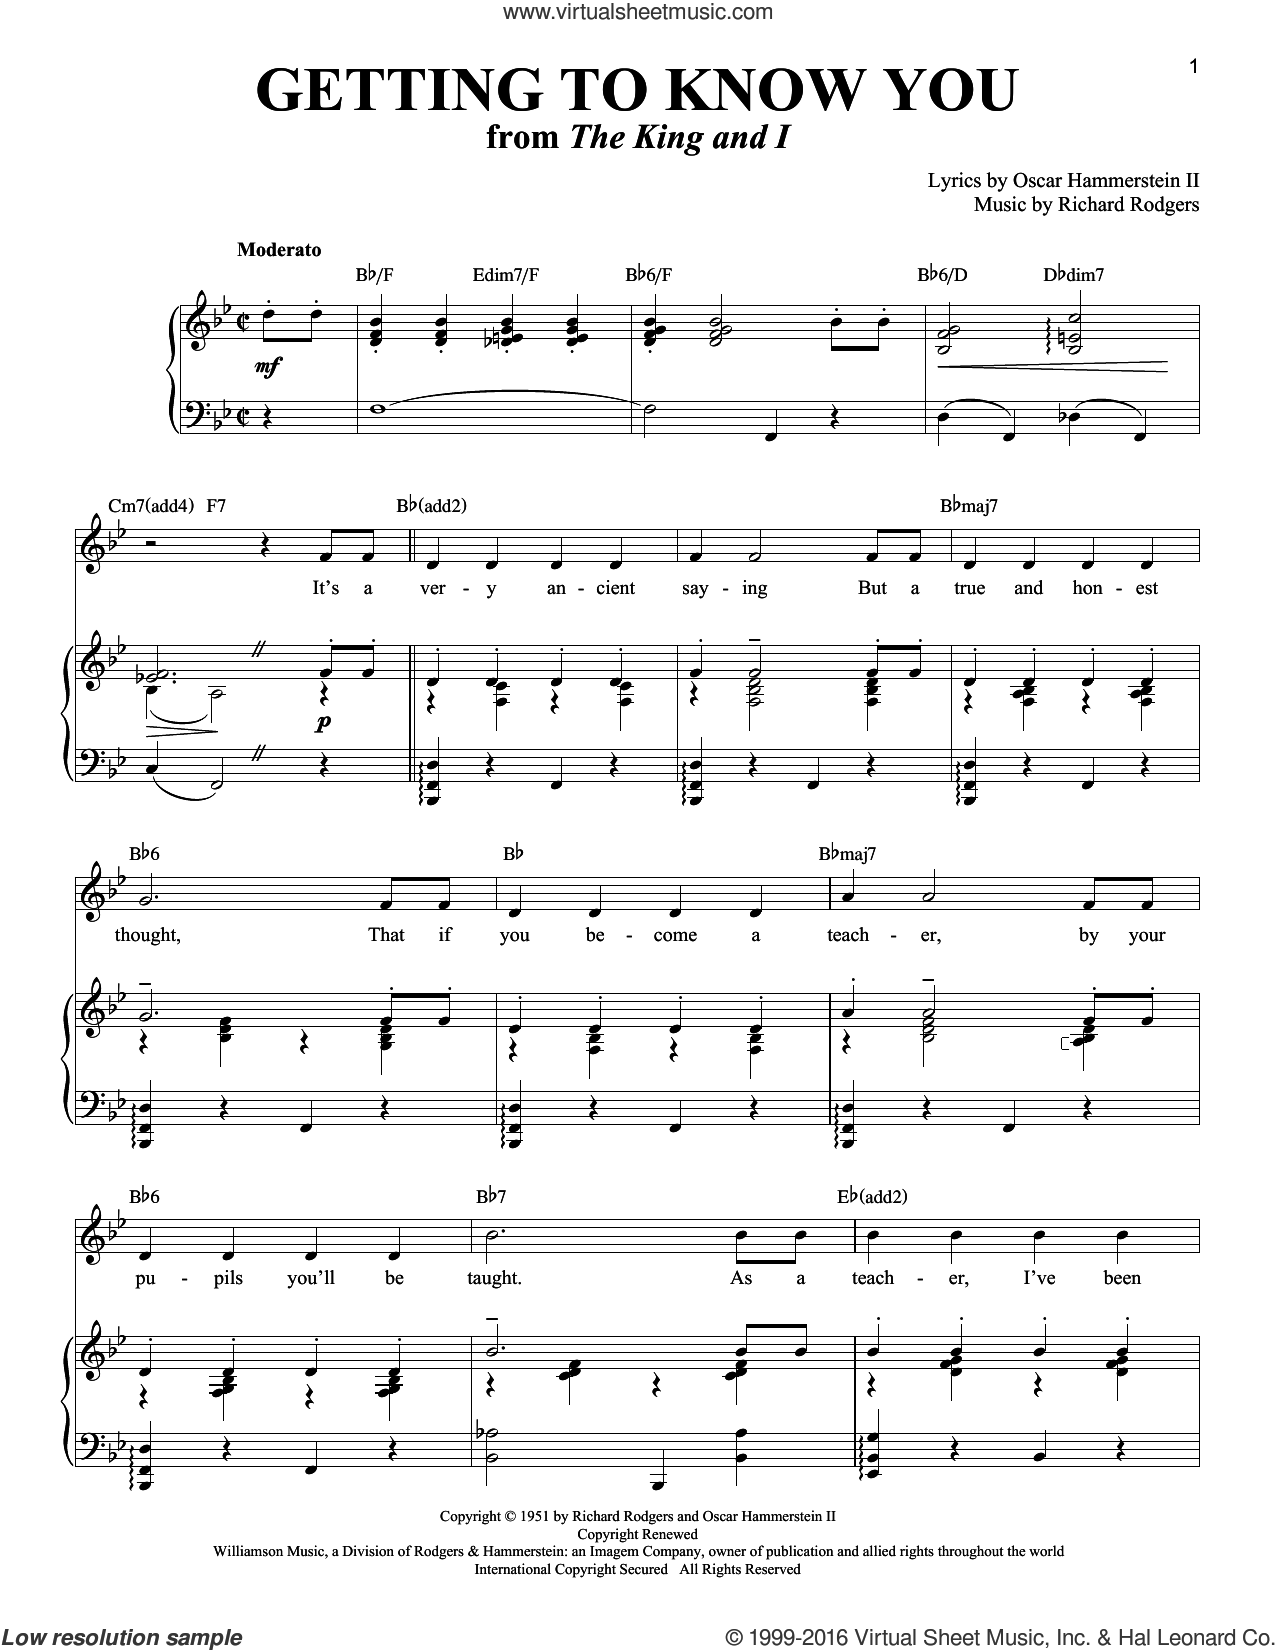 Getting To Know You sheet music for voice and piano by Rodgers & Hammerstein, The King And I (Musical), Oscar II Hammerstein and Richard Rodgers, intermediate skill level